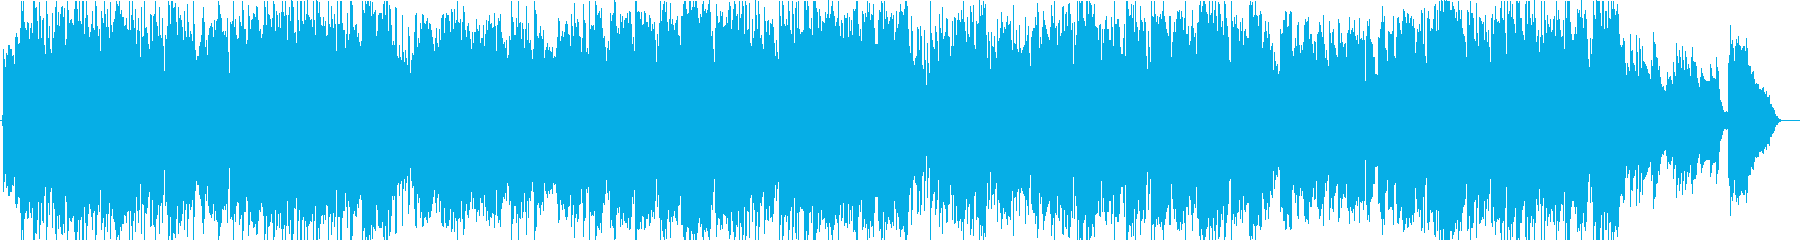 Well-lighted Japanese-style shakuhachi's reproduced waveform